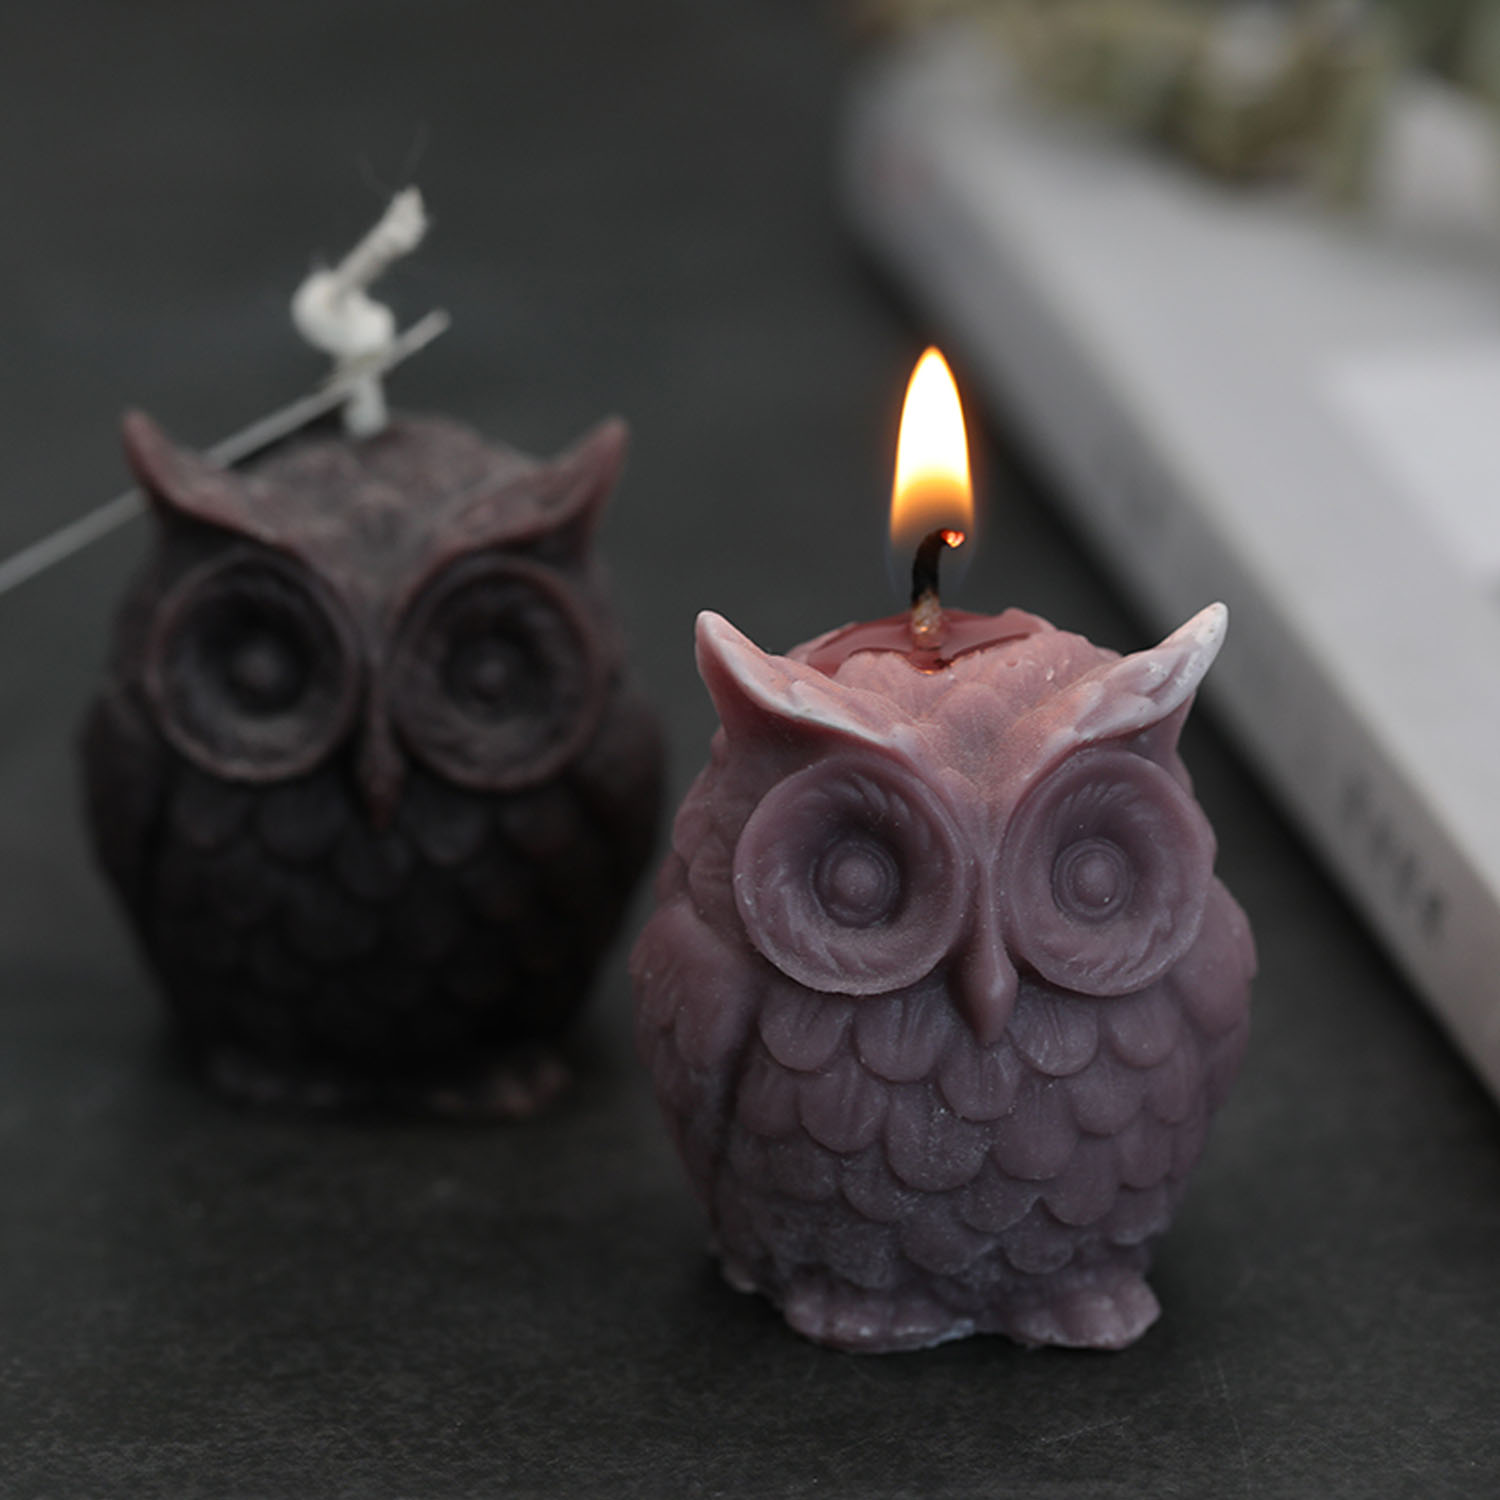 3D Owl Candle Mold Silicone Mold For Candle Making DIY Handmade Resin Molds For Plaster Wax Mould